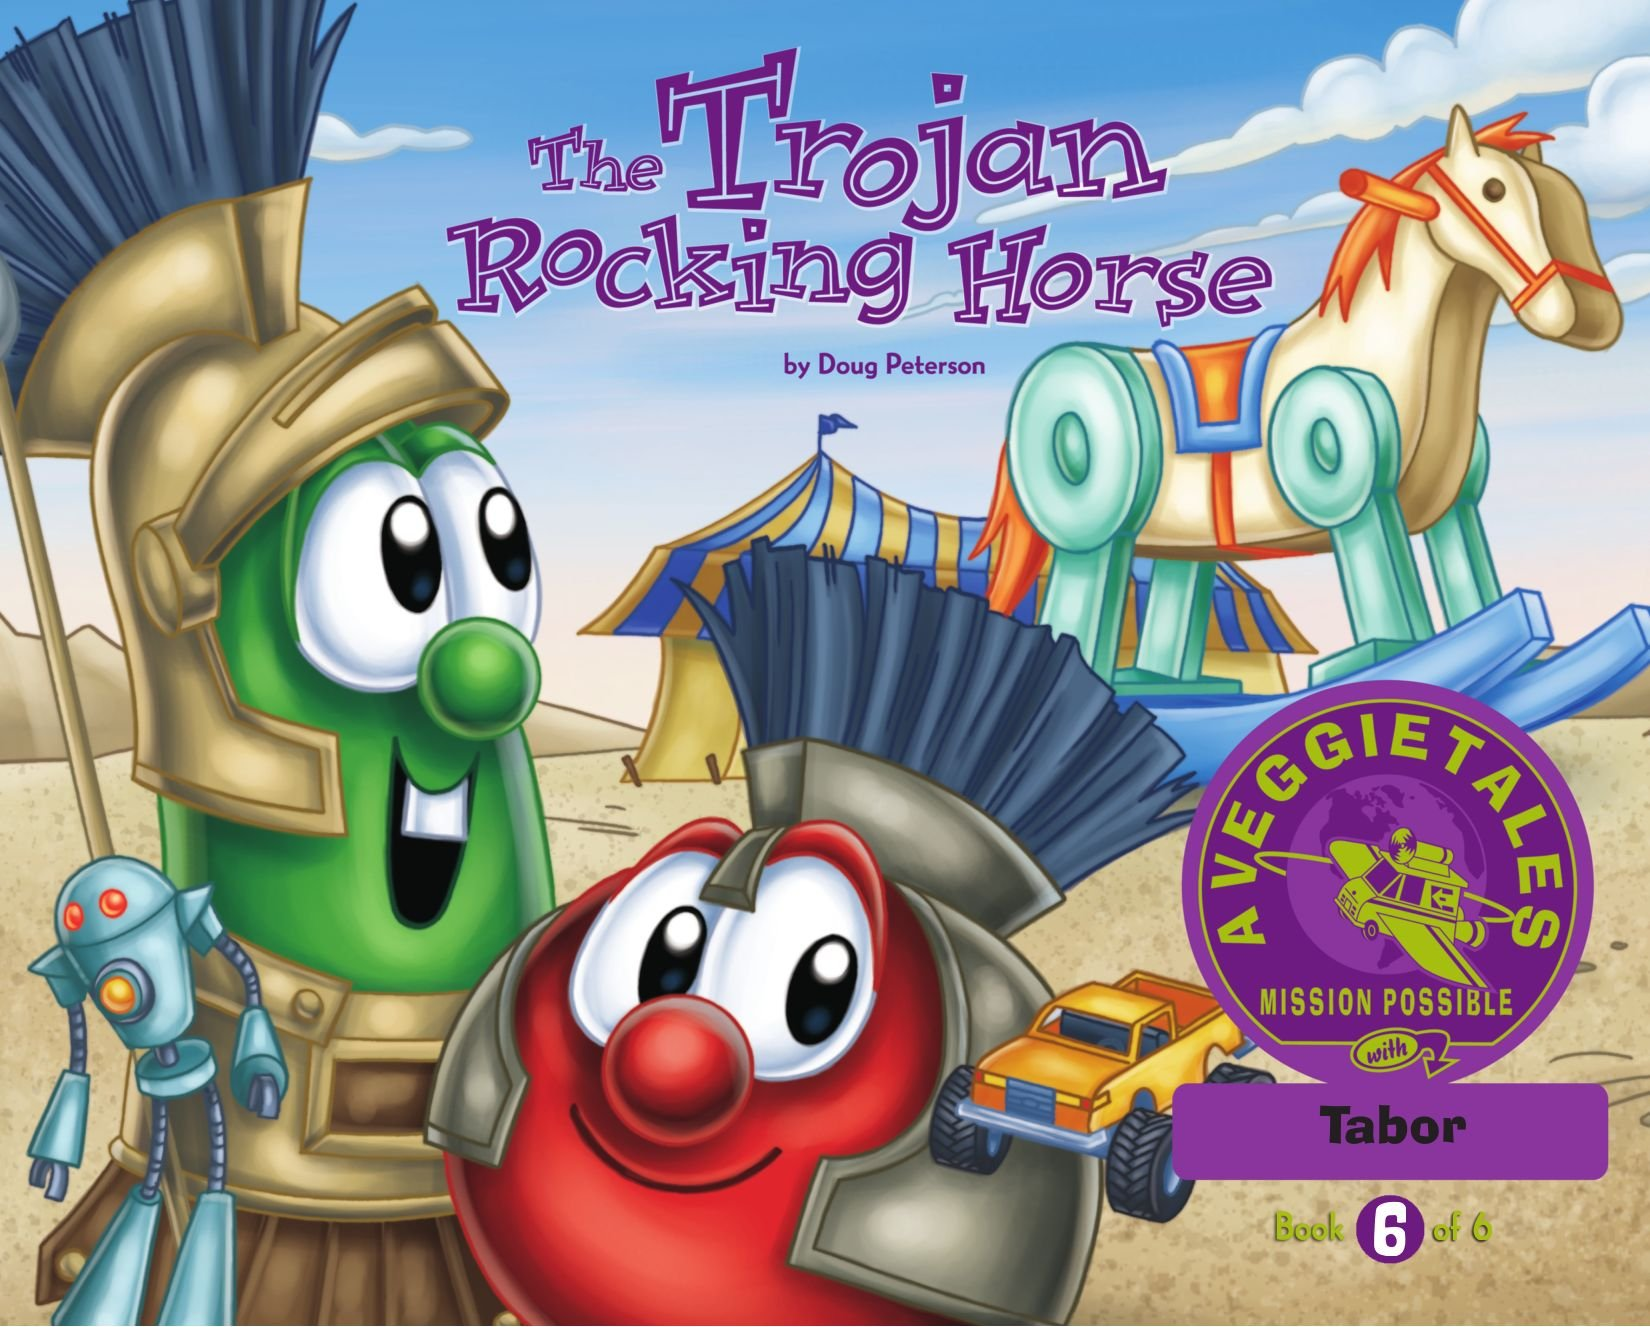 Download The Trojan Rocking Horse - VeggieTales Mission Possible Adventure Series #6: Personalized for Tabor (Girl) ebook